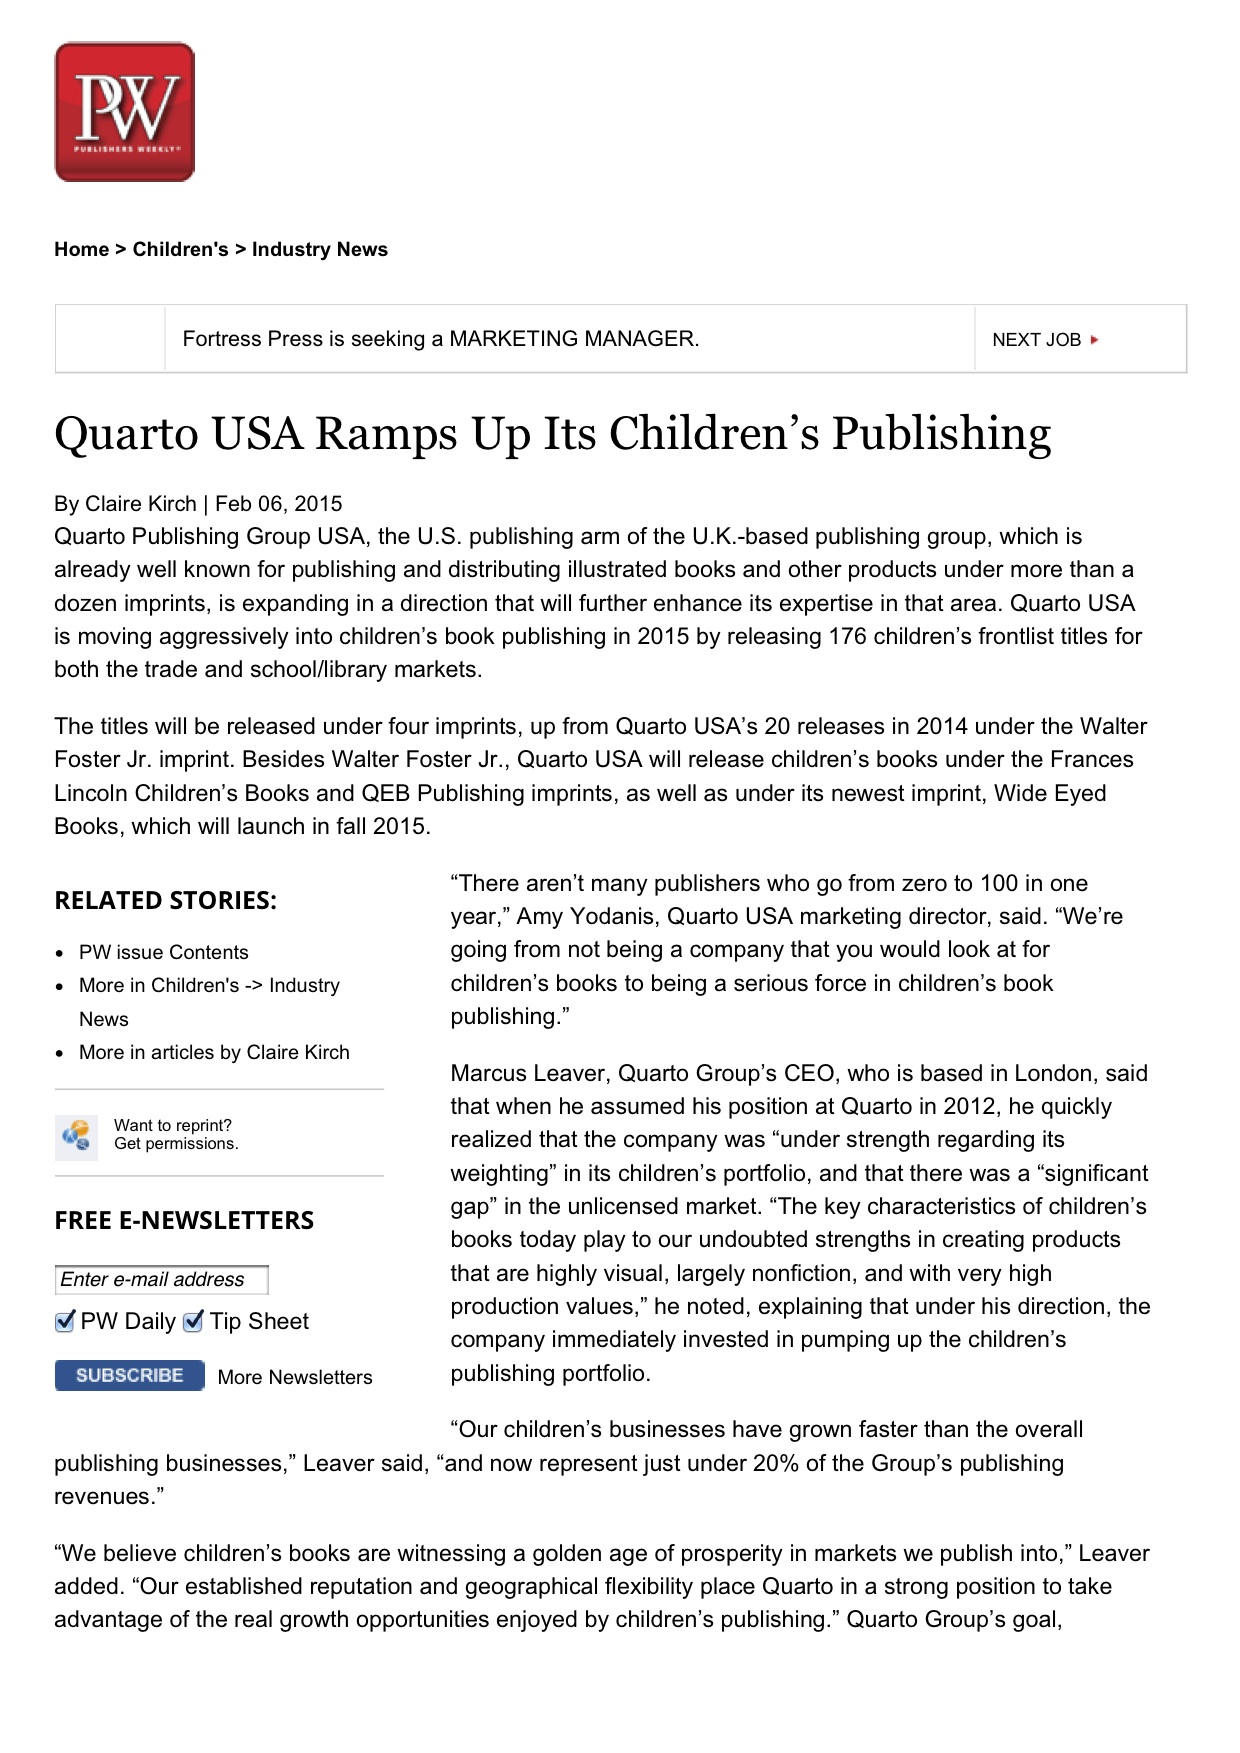 Quarto USA Ramps Up Its Children's Publishing.jpg